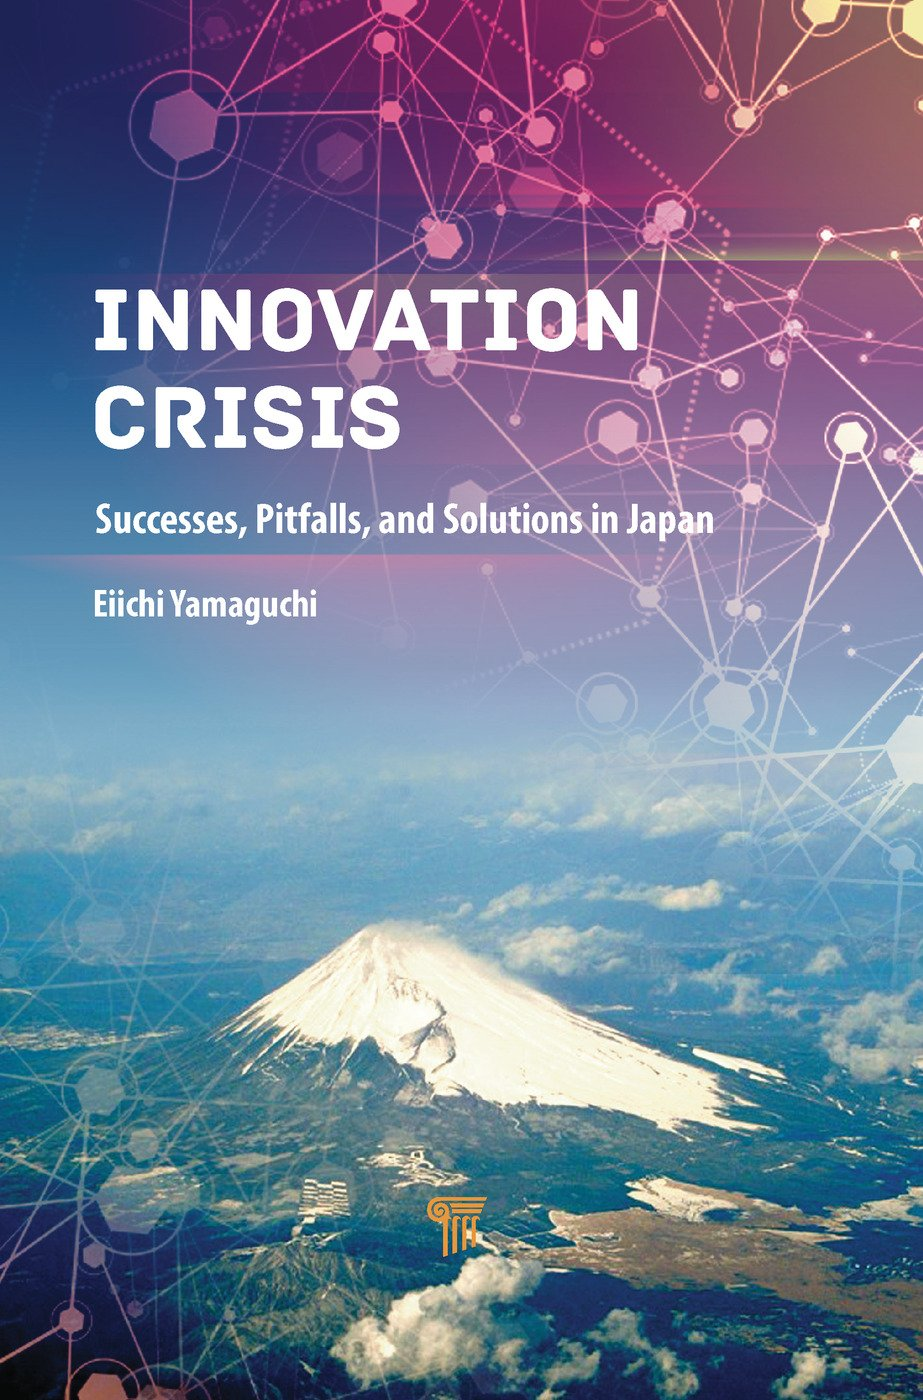 Innovation Crisis: Successes, Pitfalls, and Solutions in Japan book cover